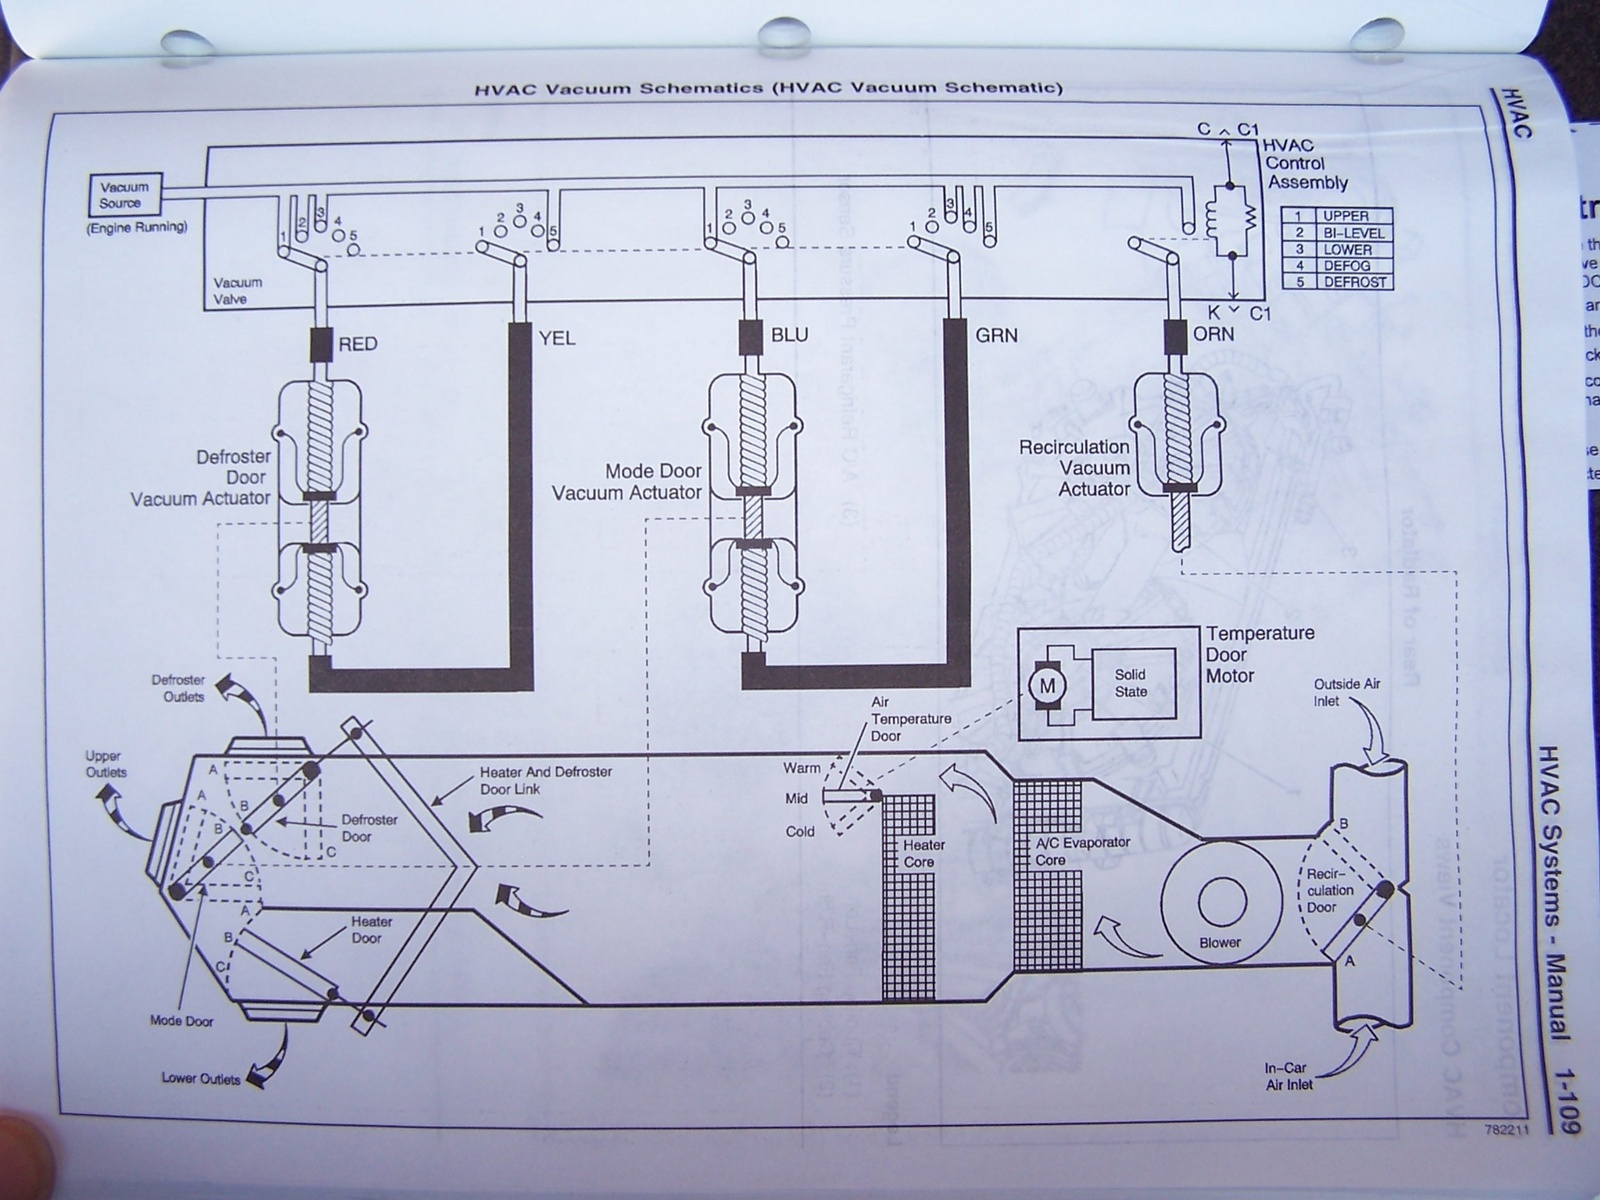 1996 Grand Am Fuse Diagram Wiring Will Be A Thing 2002 Pontiac Chevrolet Blazer Questions My Heater Stopped Blowing Hot Box 1997